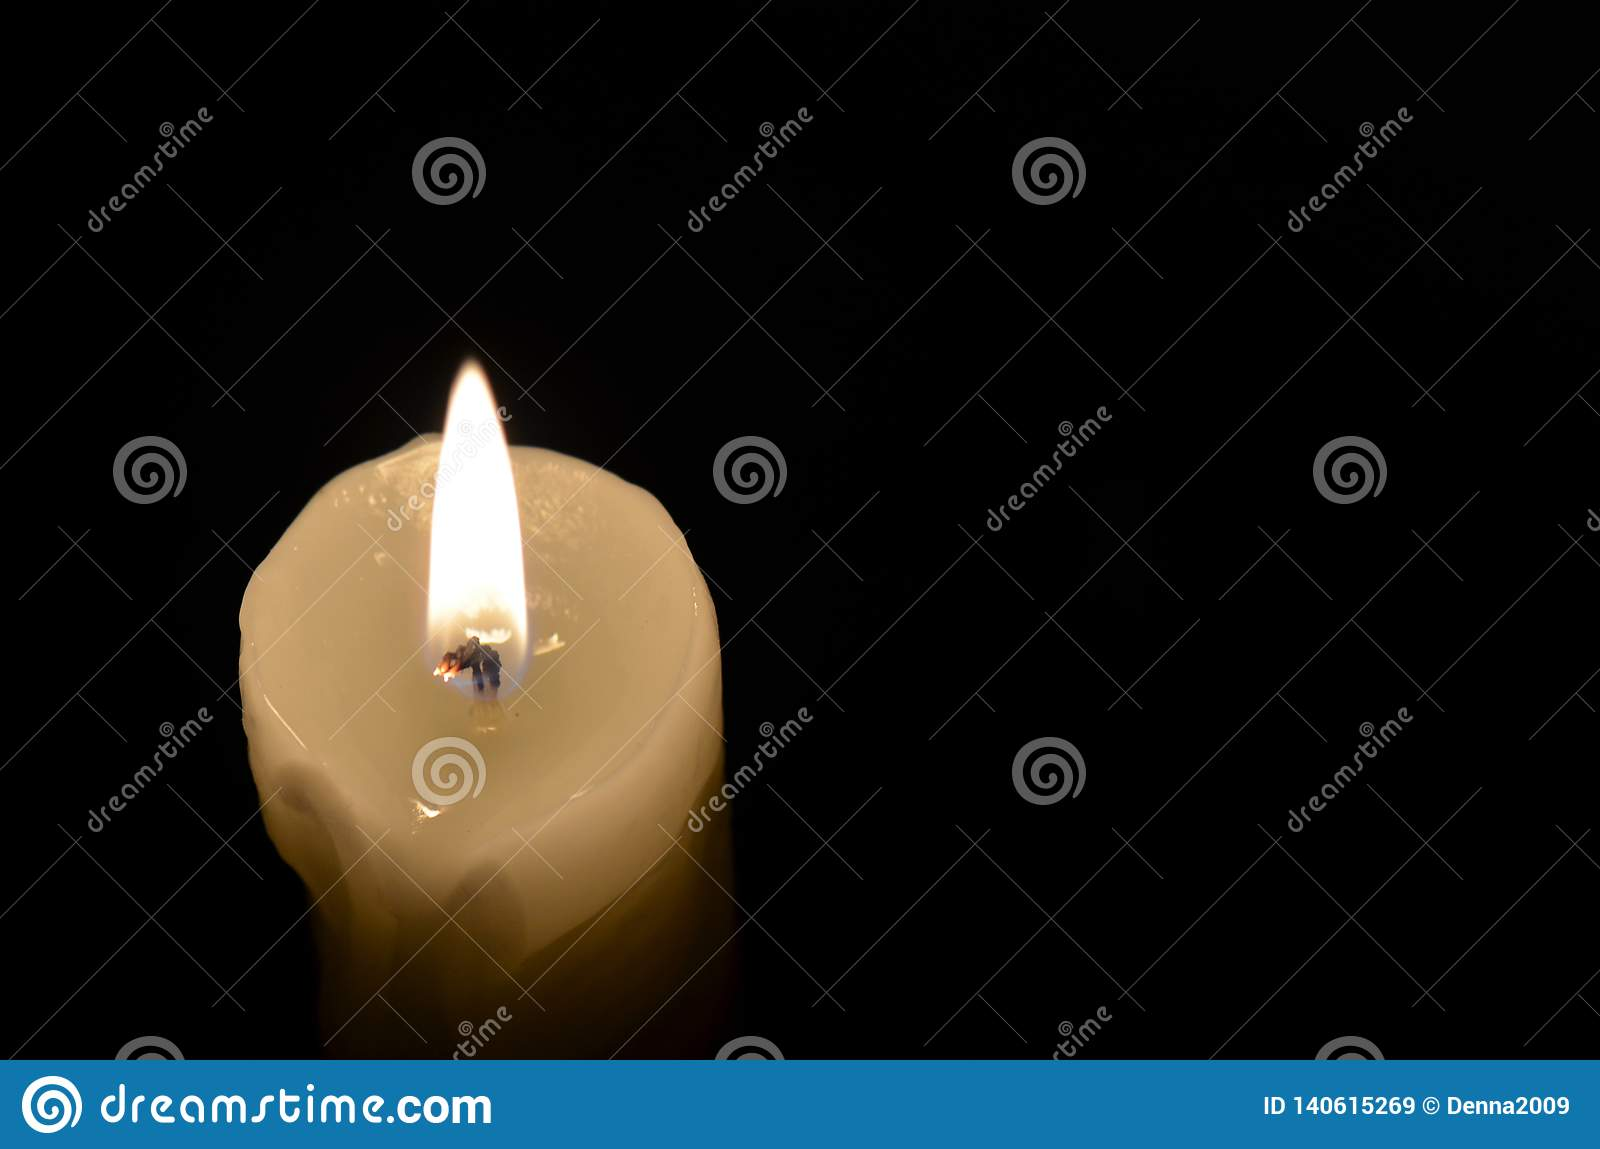 Rest In Peace Candle On The Black Background Stock Image